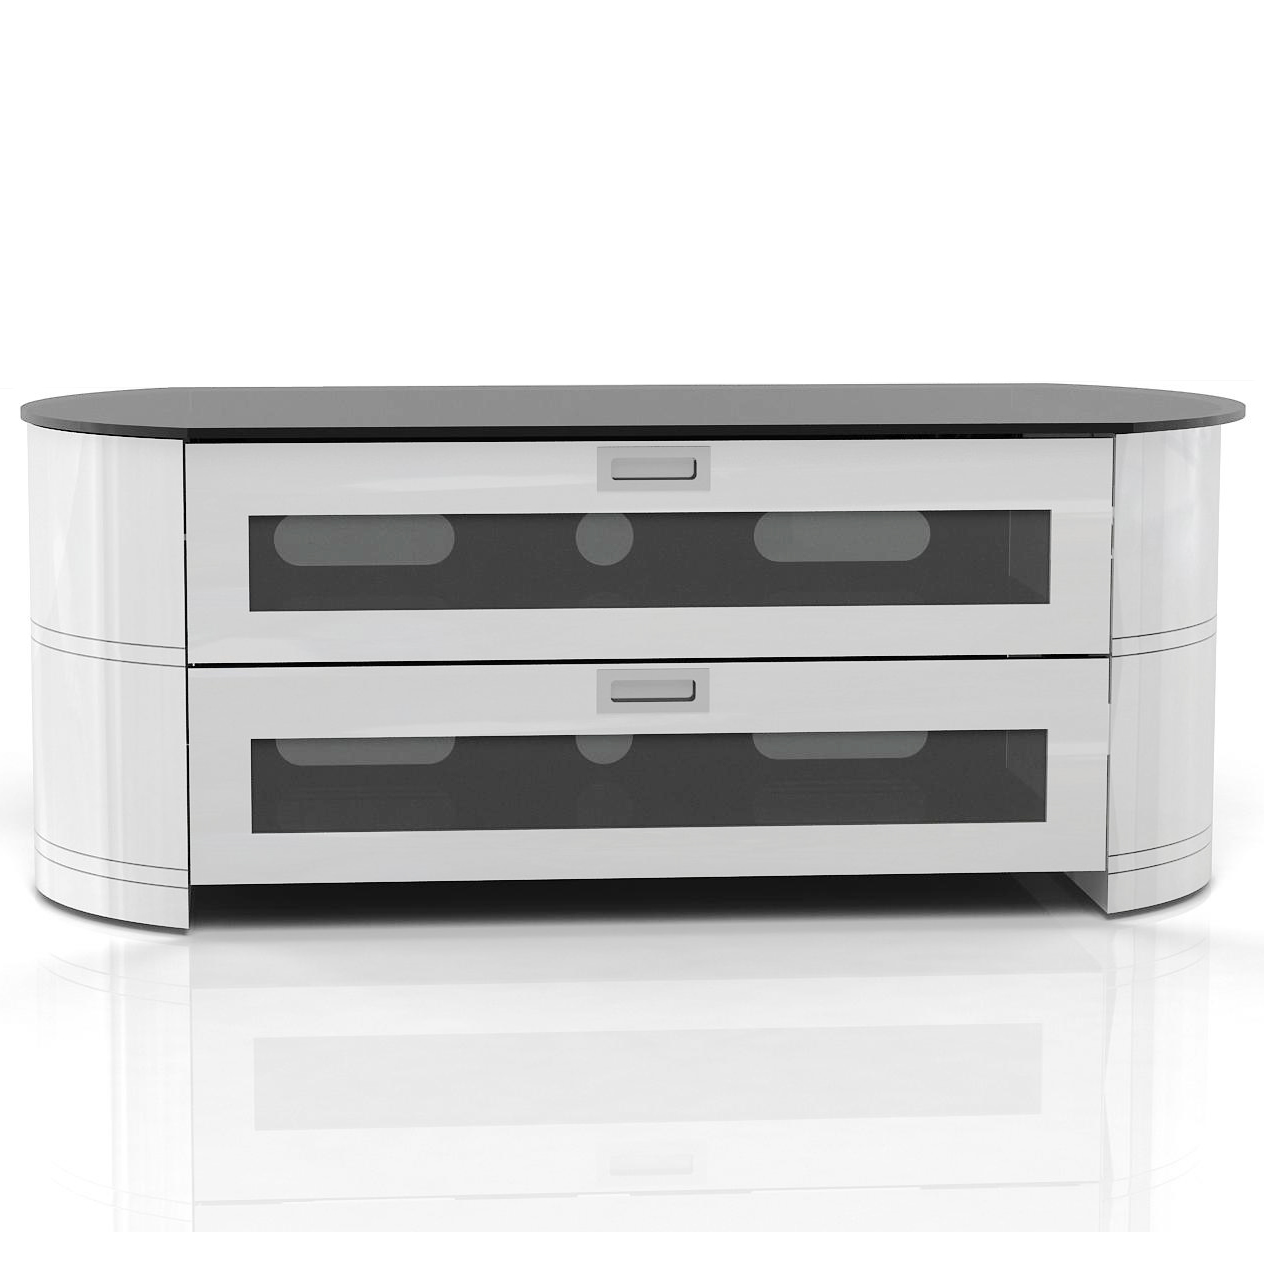 White Tv Stand Cabinet Cb Tv Stand Stand Stand Image Wall